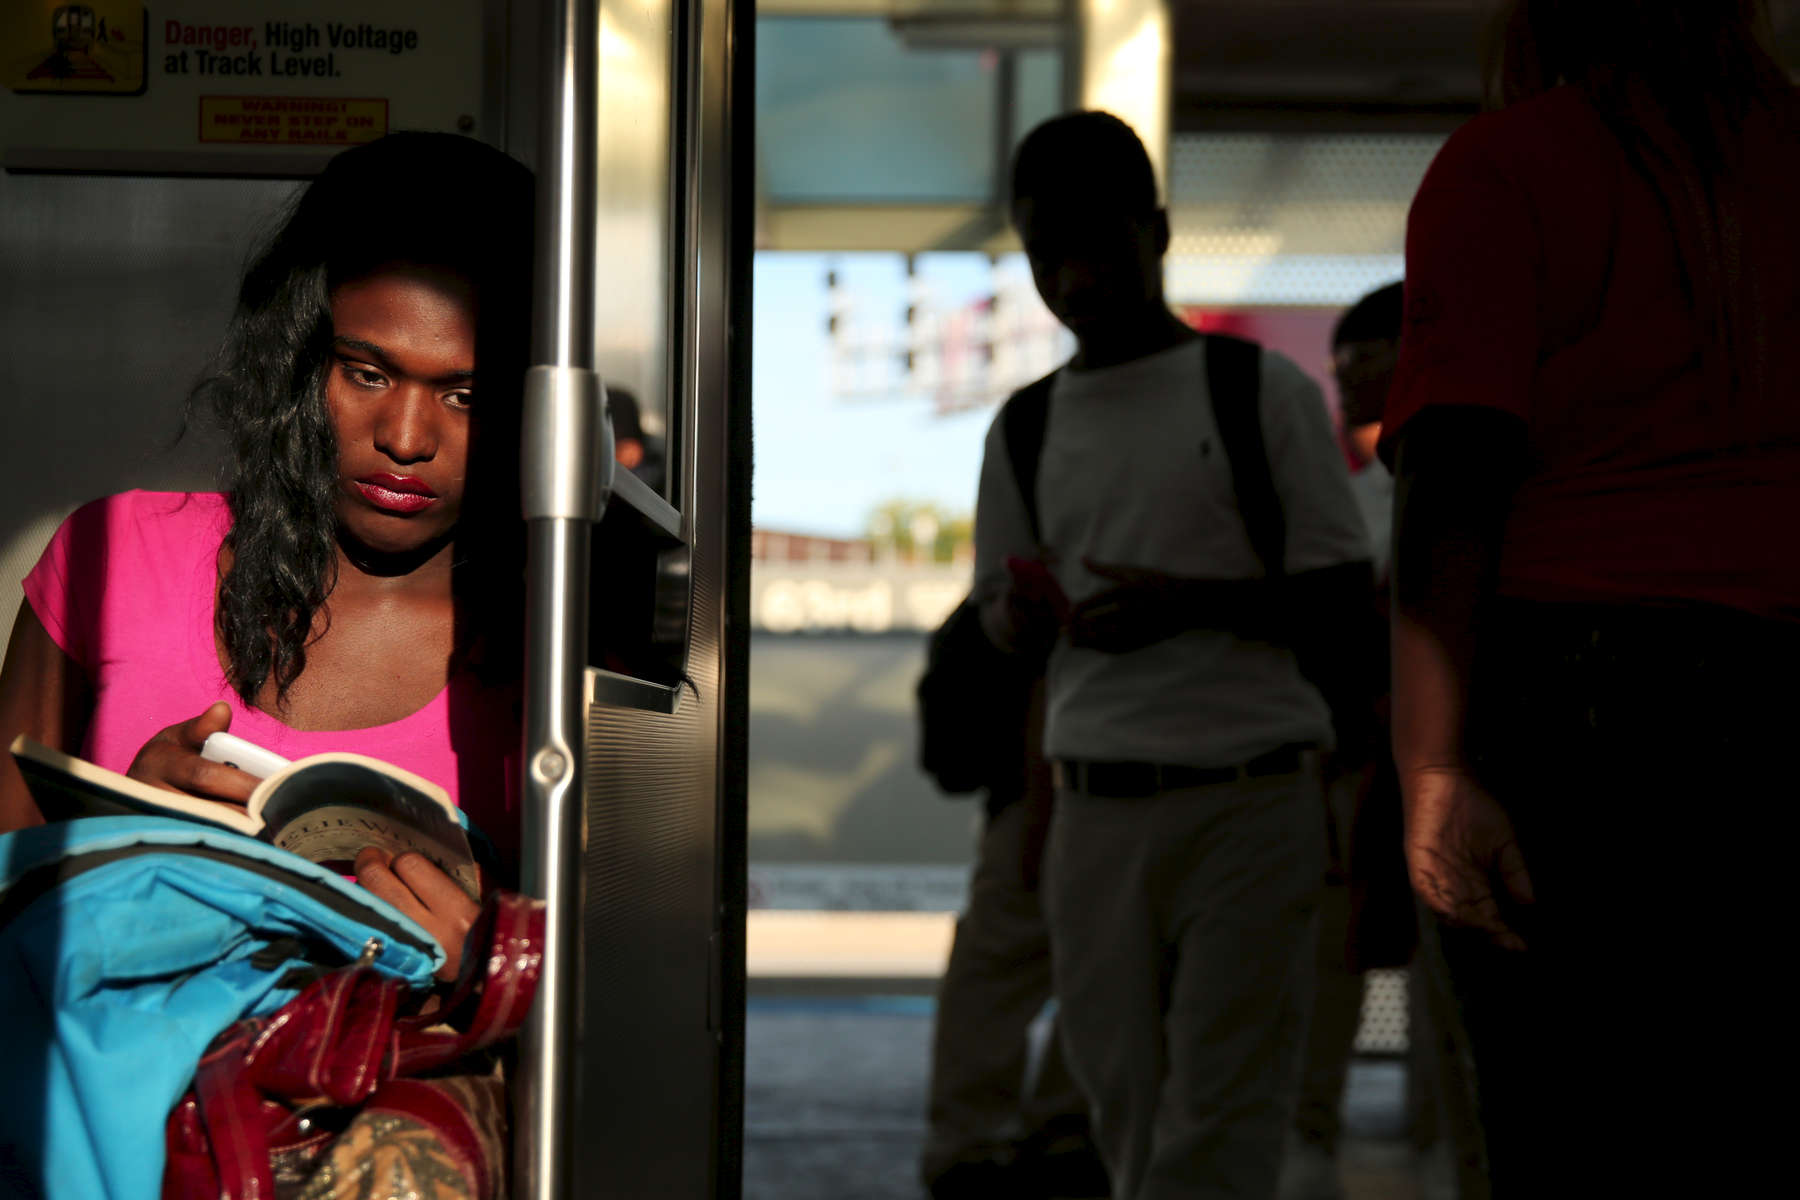 Former Lawrence Hall Youth Services resident Keyona Laws rides the CTA red line train to see a friend in Chicago. Laws, a transgendered person, was severely abused while in foster care as a child before being sent to live at Lawrence hall where she would often run away and resort to prostitution for money.